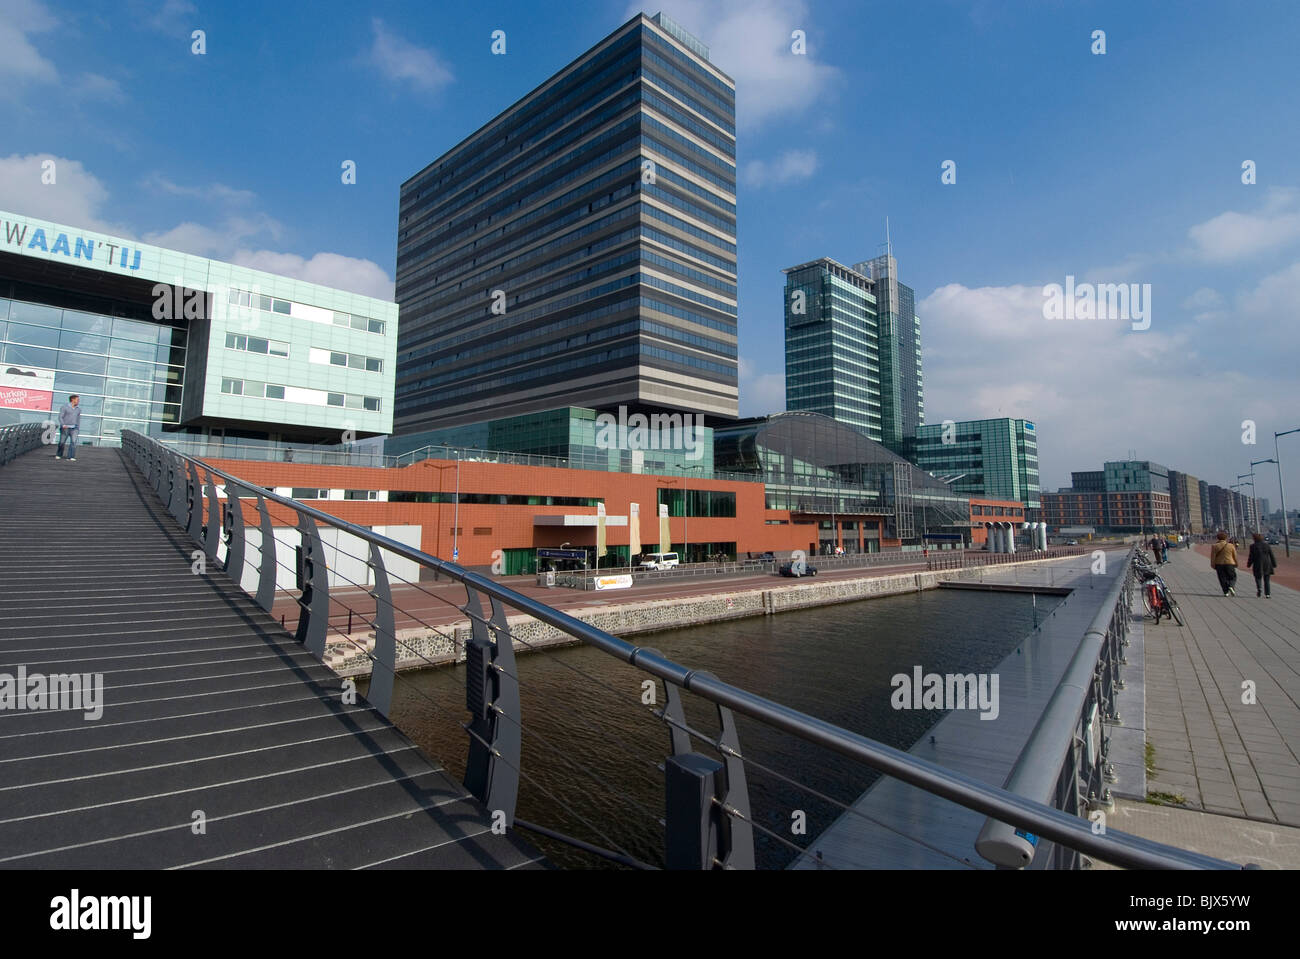 Movenpick Hotel in the newly developed area of the Eastern docklands, Amsterdam, Netherlands - Stock Image